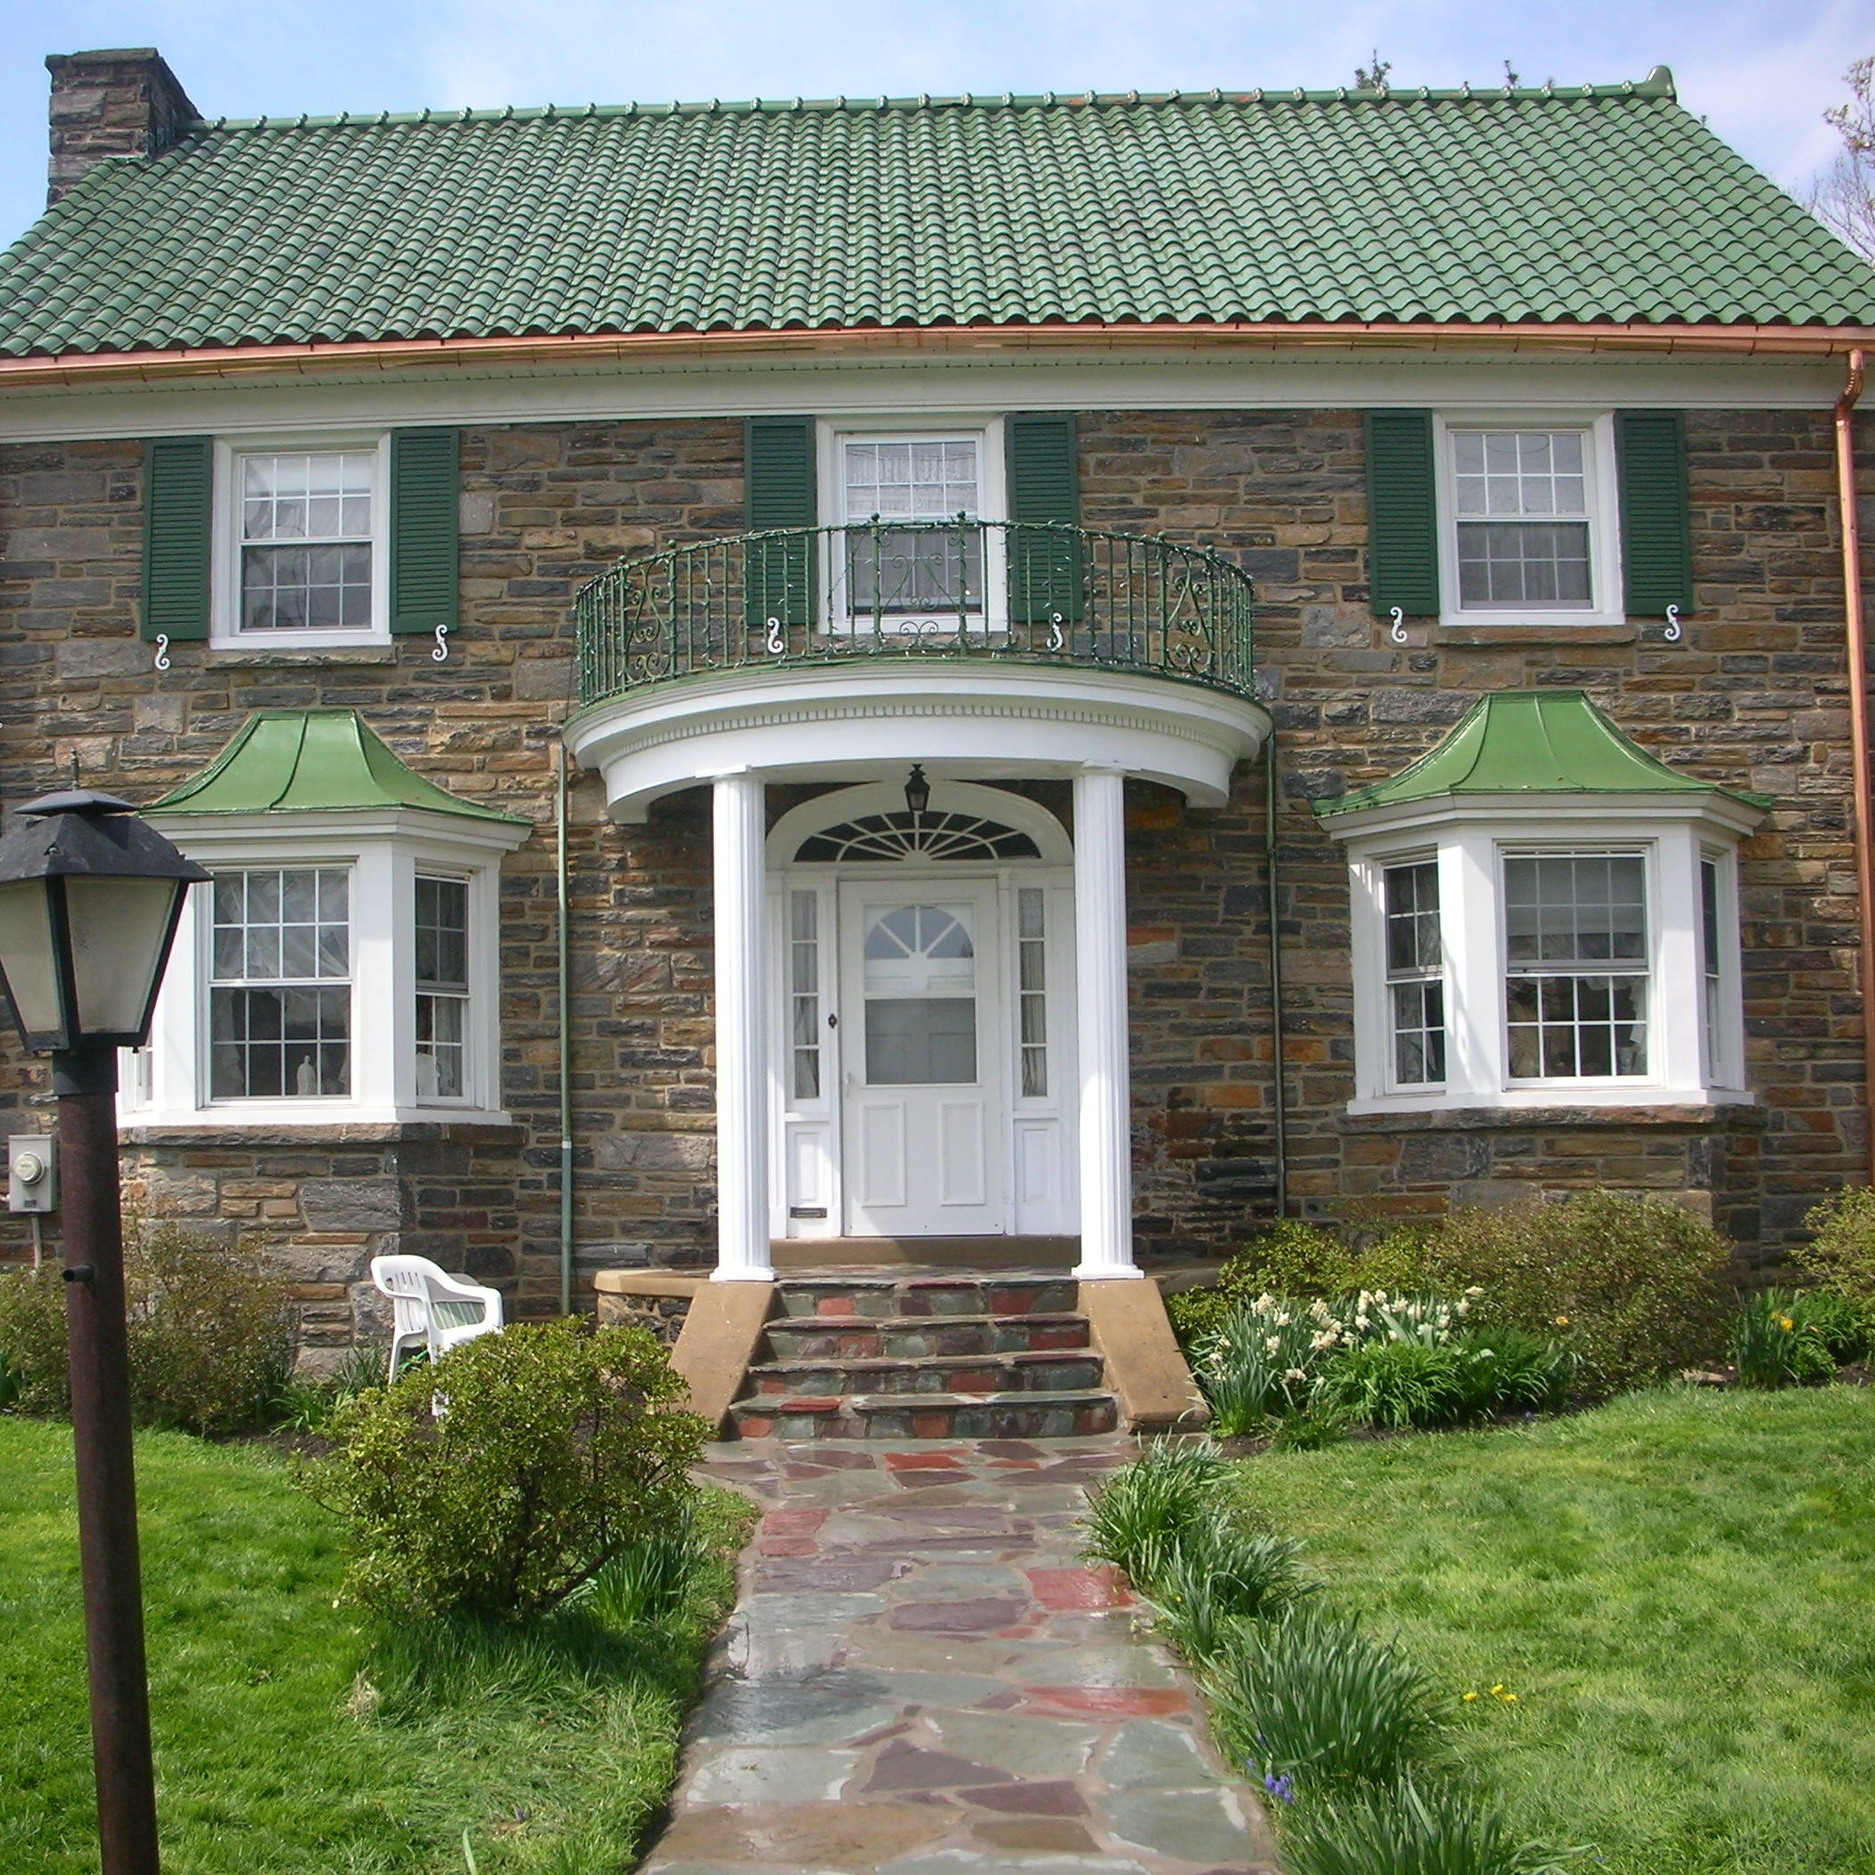 Sometimes, when the weather is nice, we can multitask for less than what it would cost to do each project individually. In this case, in Drexel Hill, we replaced any missing or damaged glazed Ludowici tile, installed a copper gutter system, stuccoed the rear garage, and rebuilt the entrance walkway.